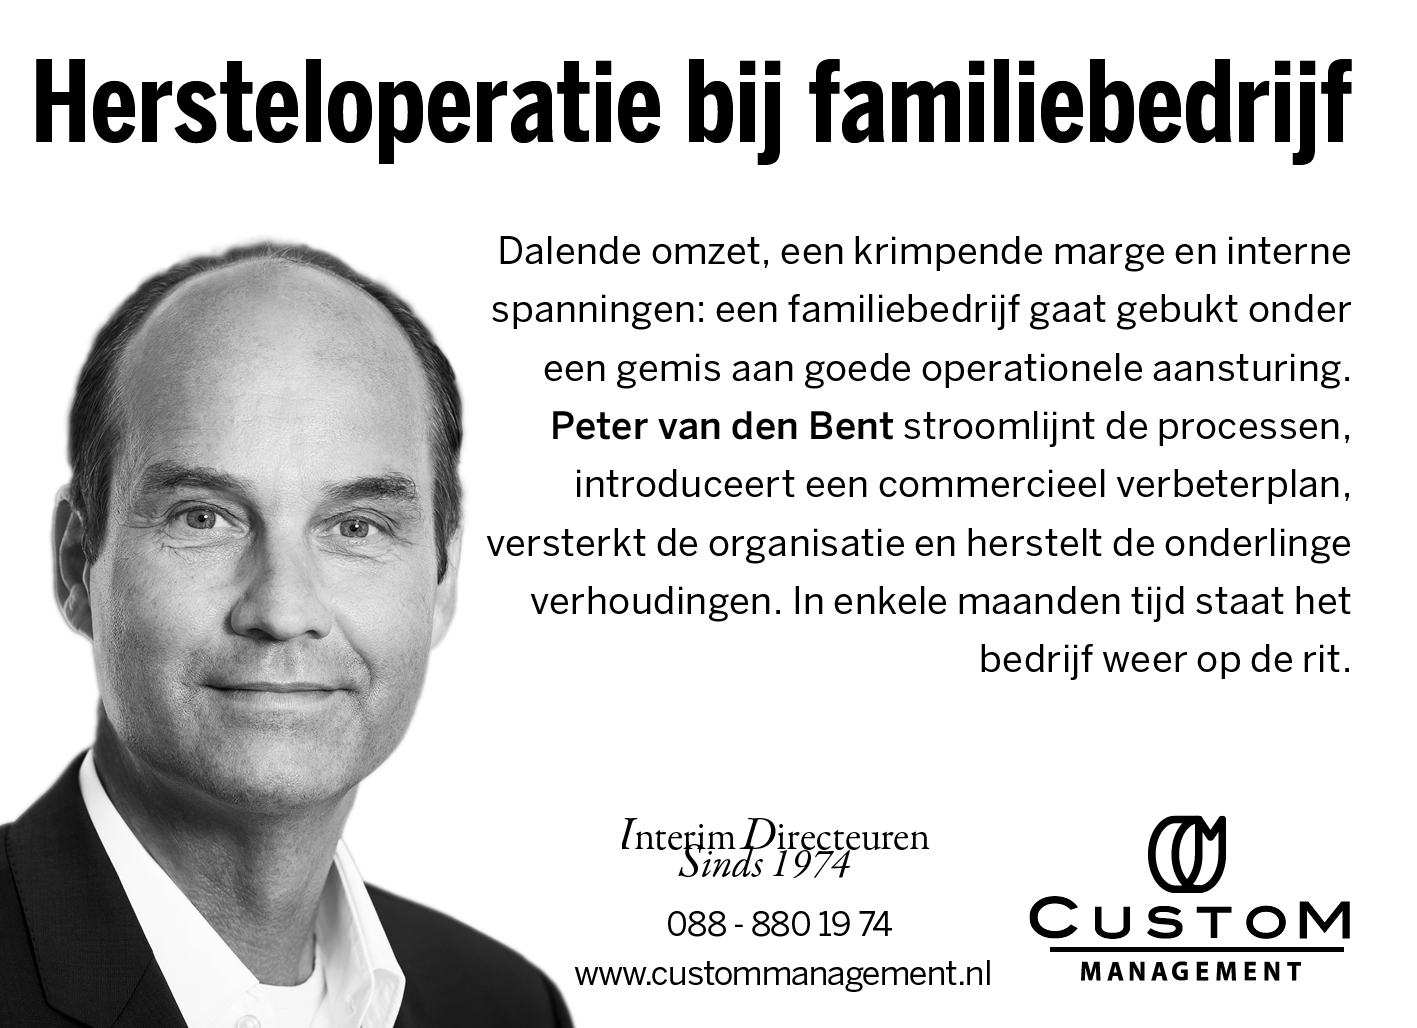 Peter van den Bent in FD